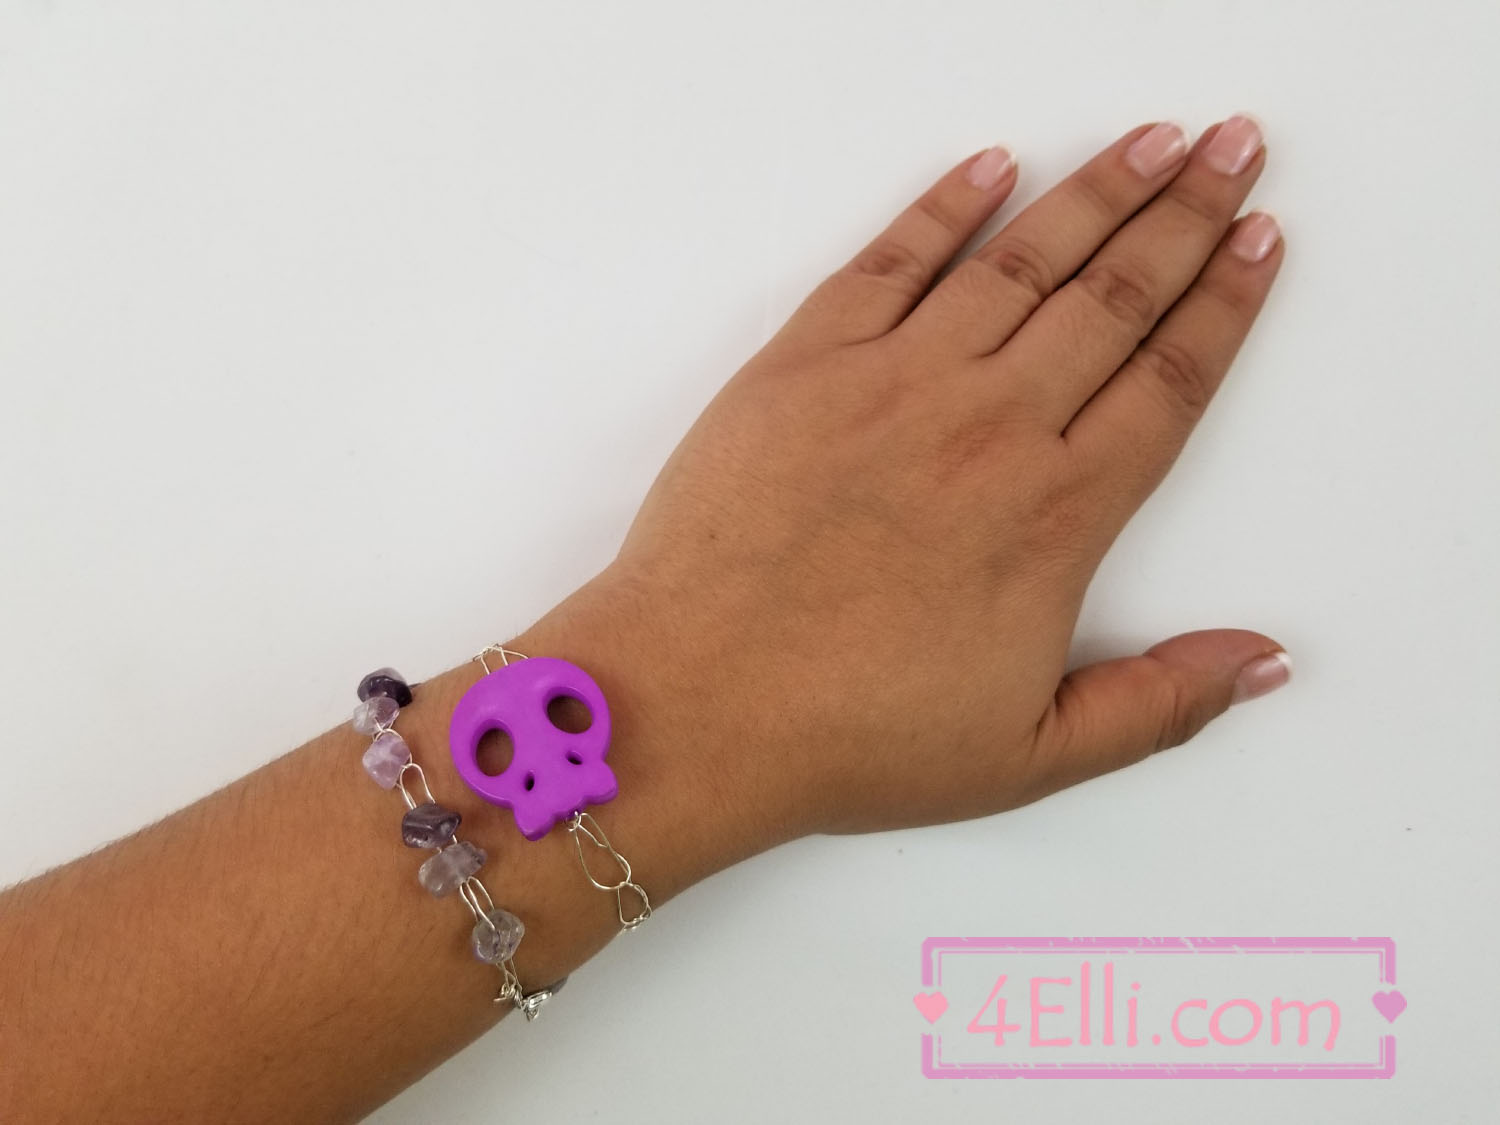 4Elli.com : Crochet wire bracelets with beads